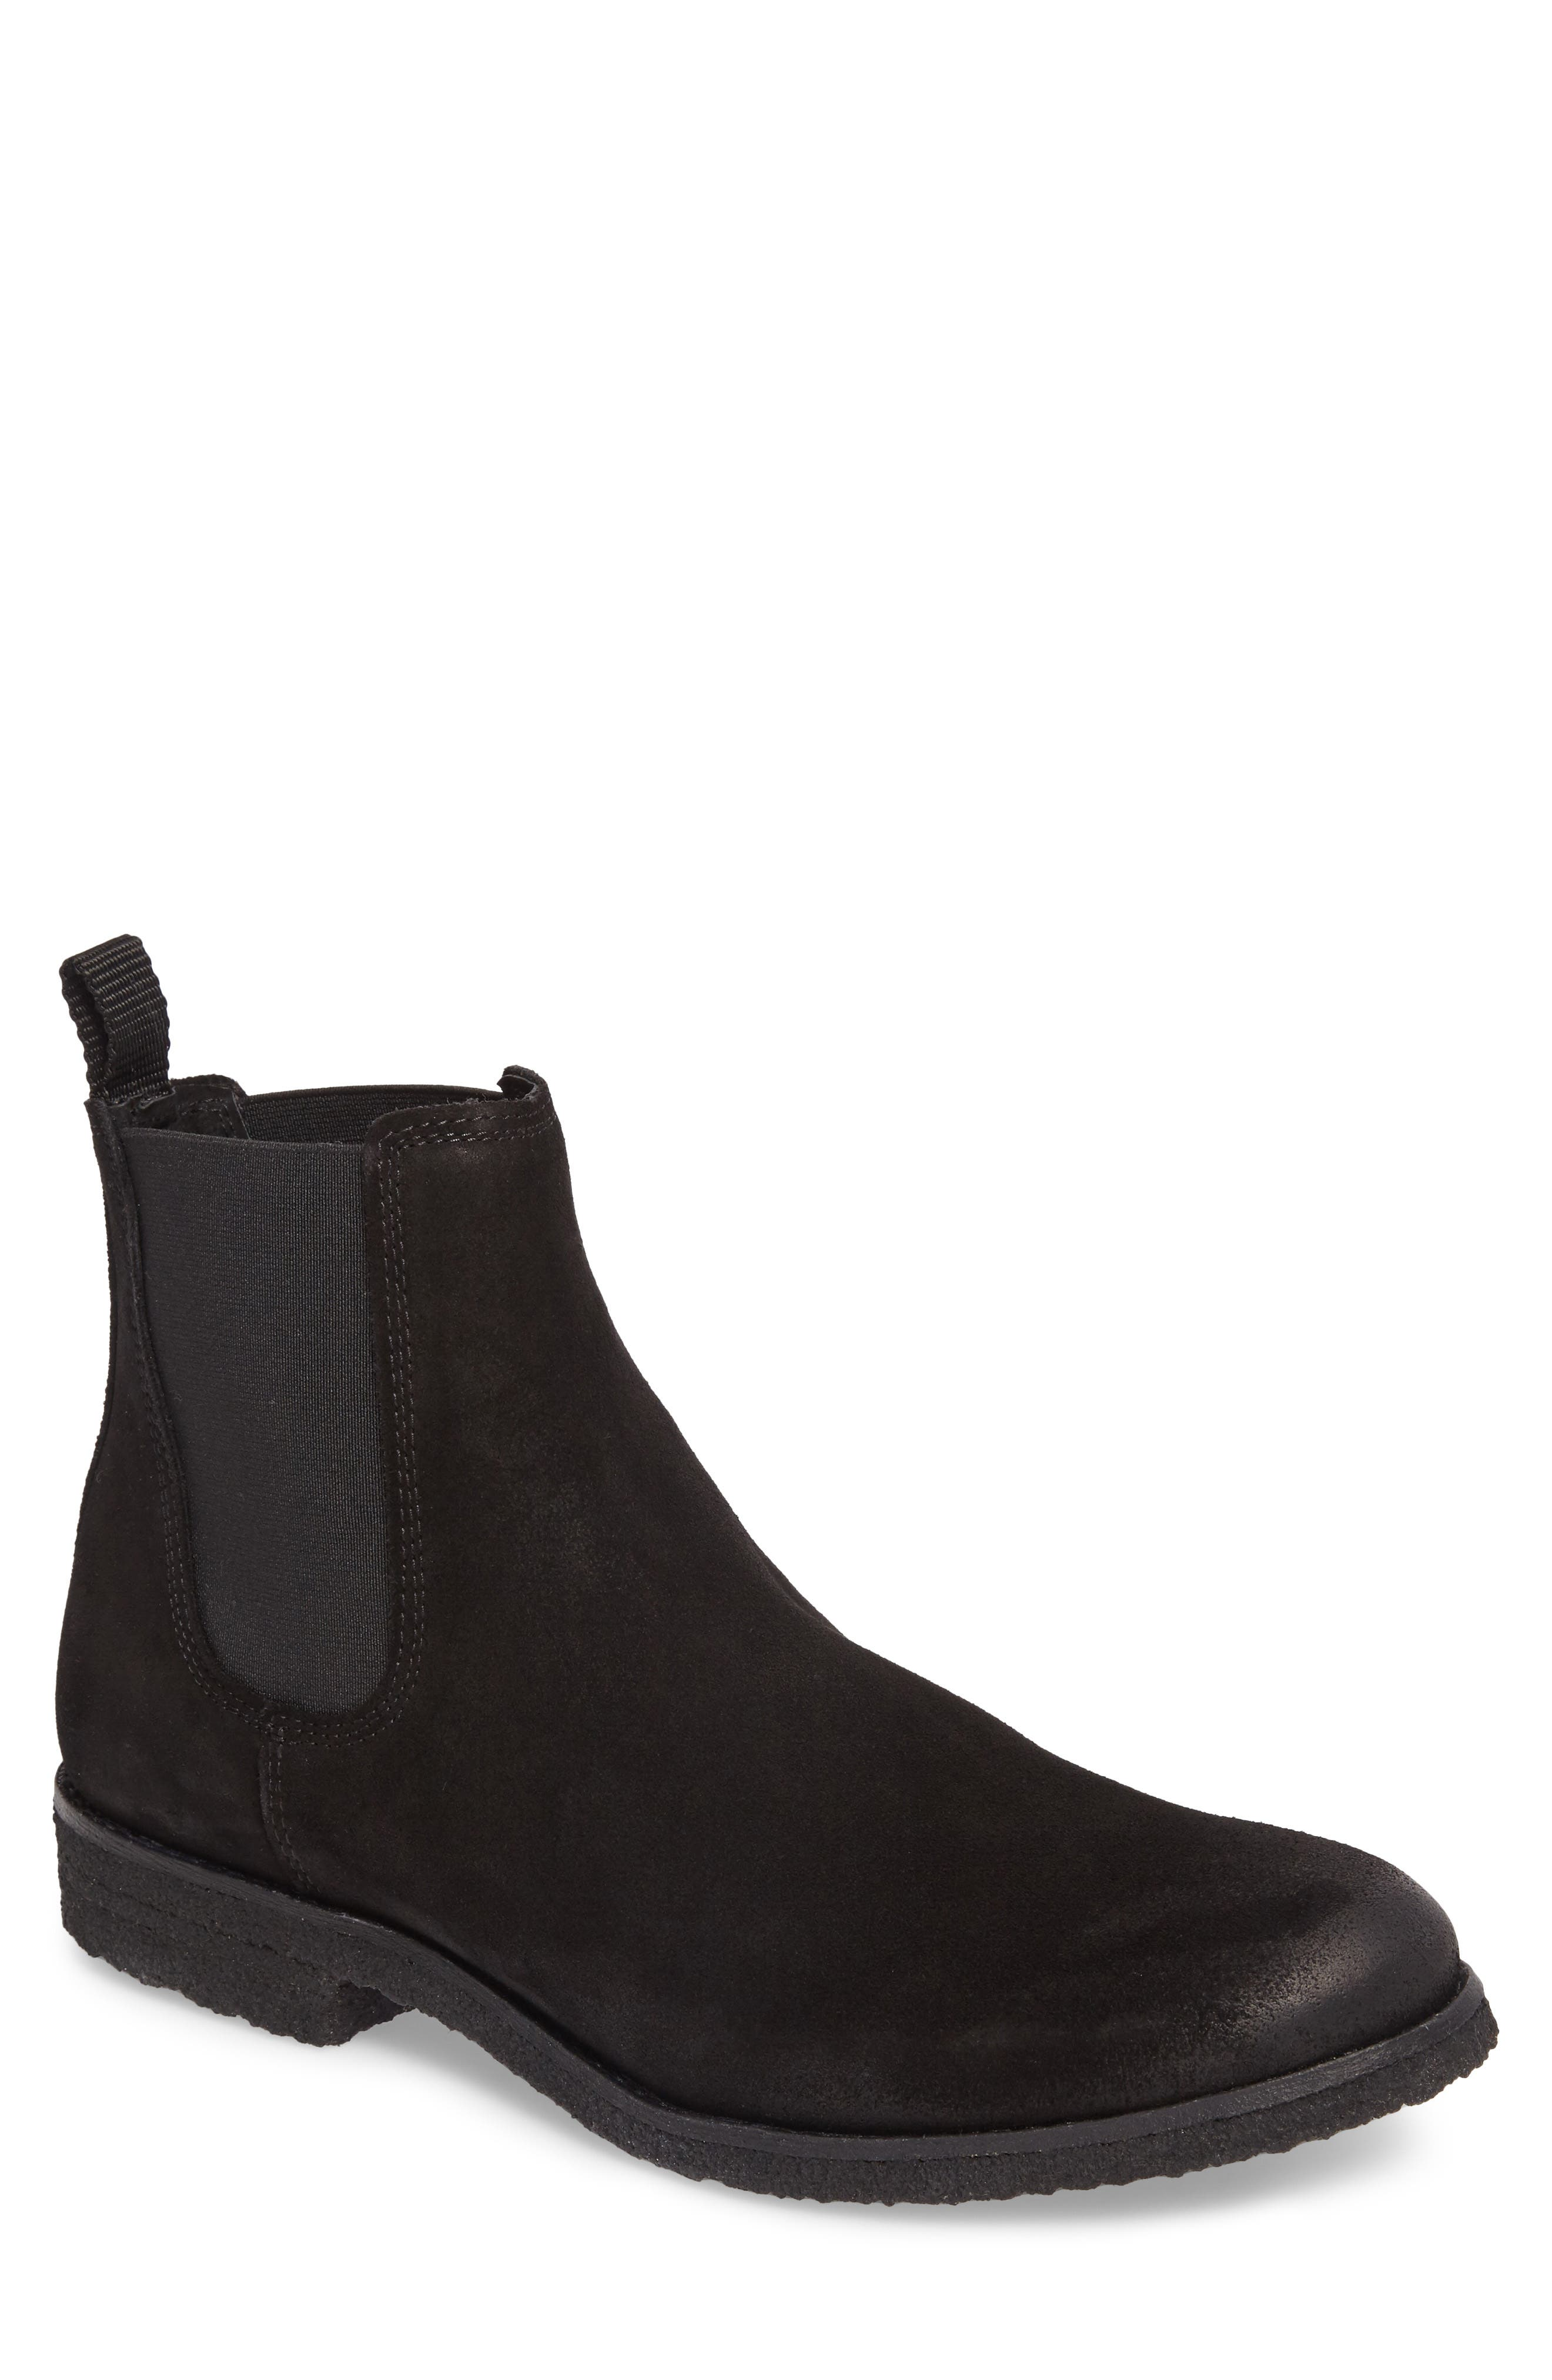 SUPPLY LAB,                             Jared Chelsea Boot,                             Main thumbnail 1, color,                             002